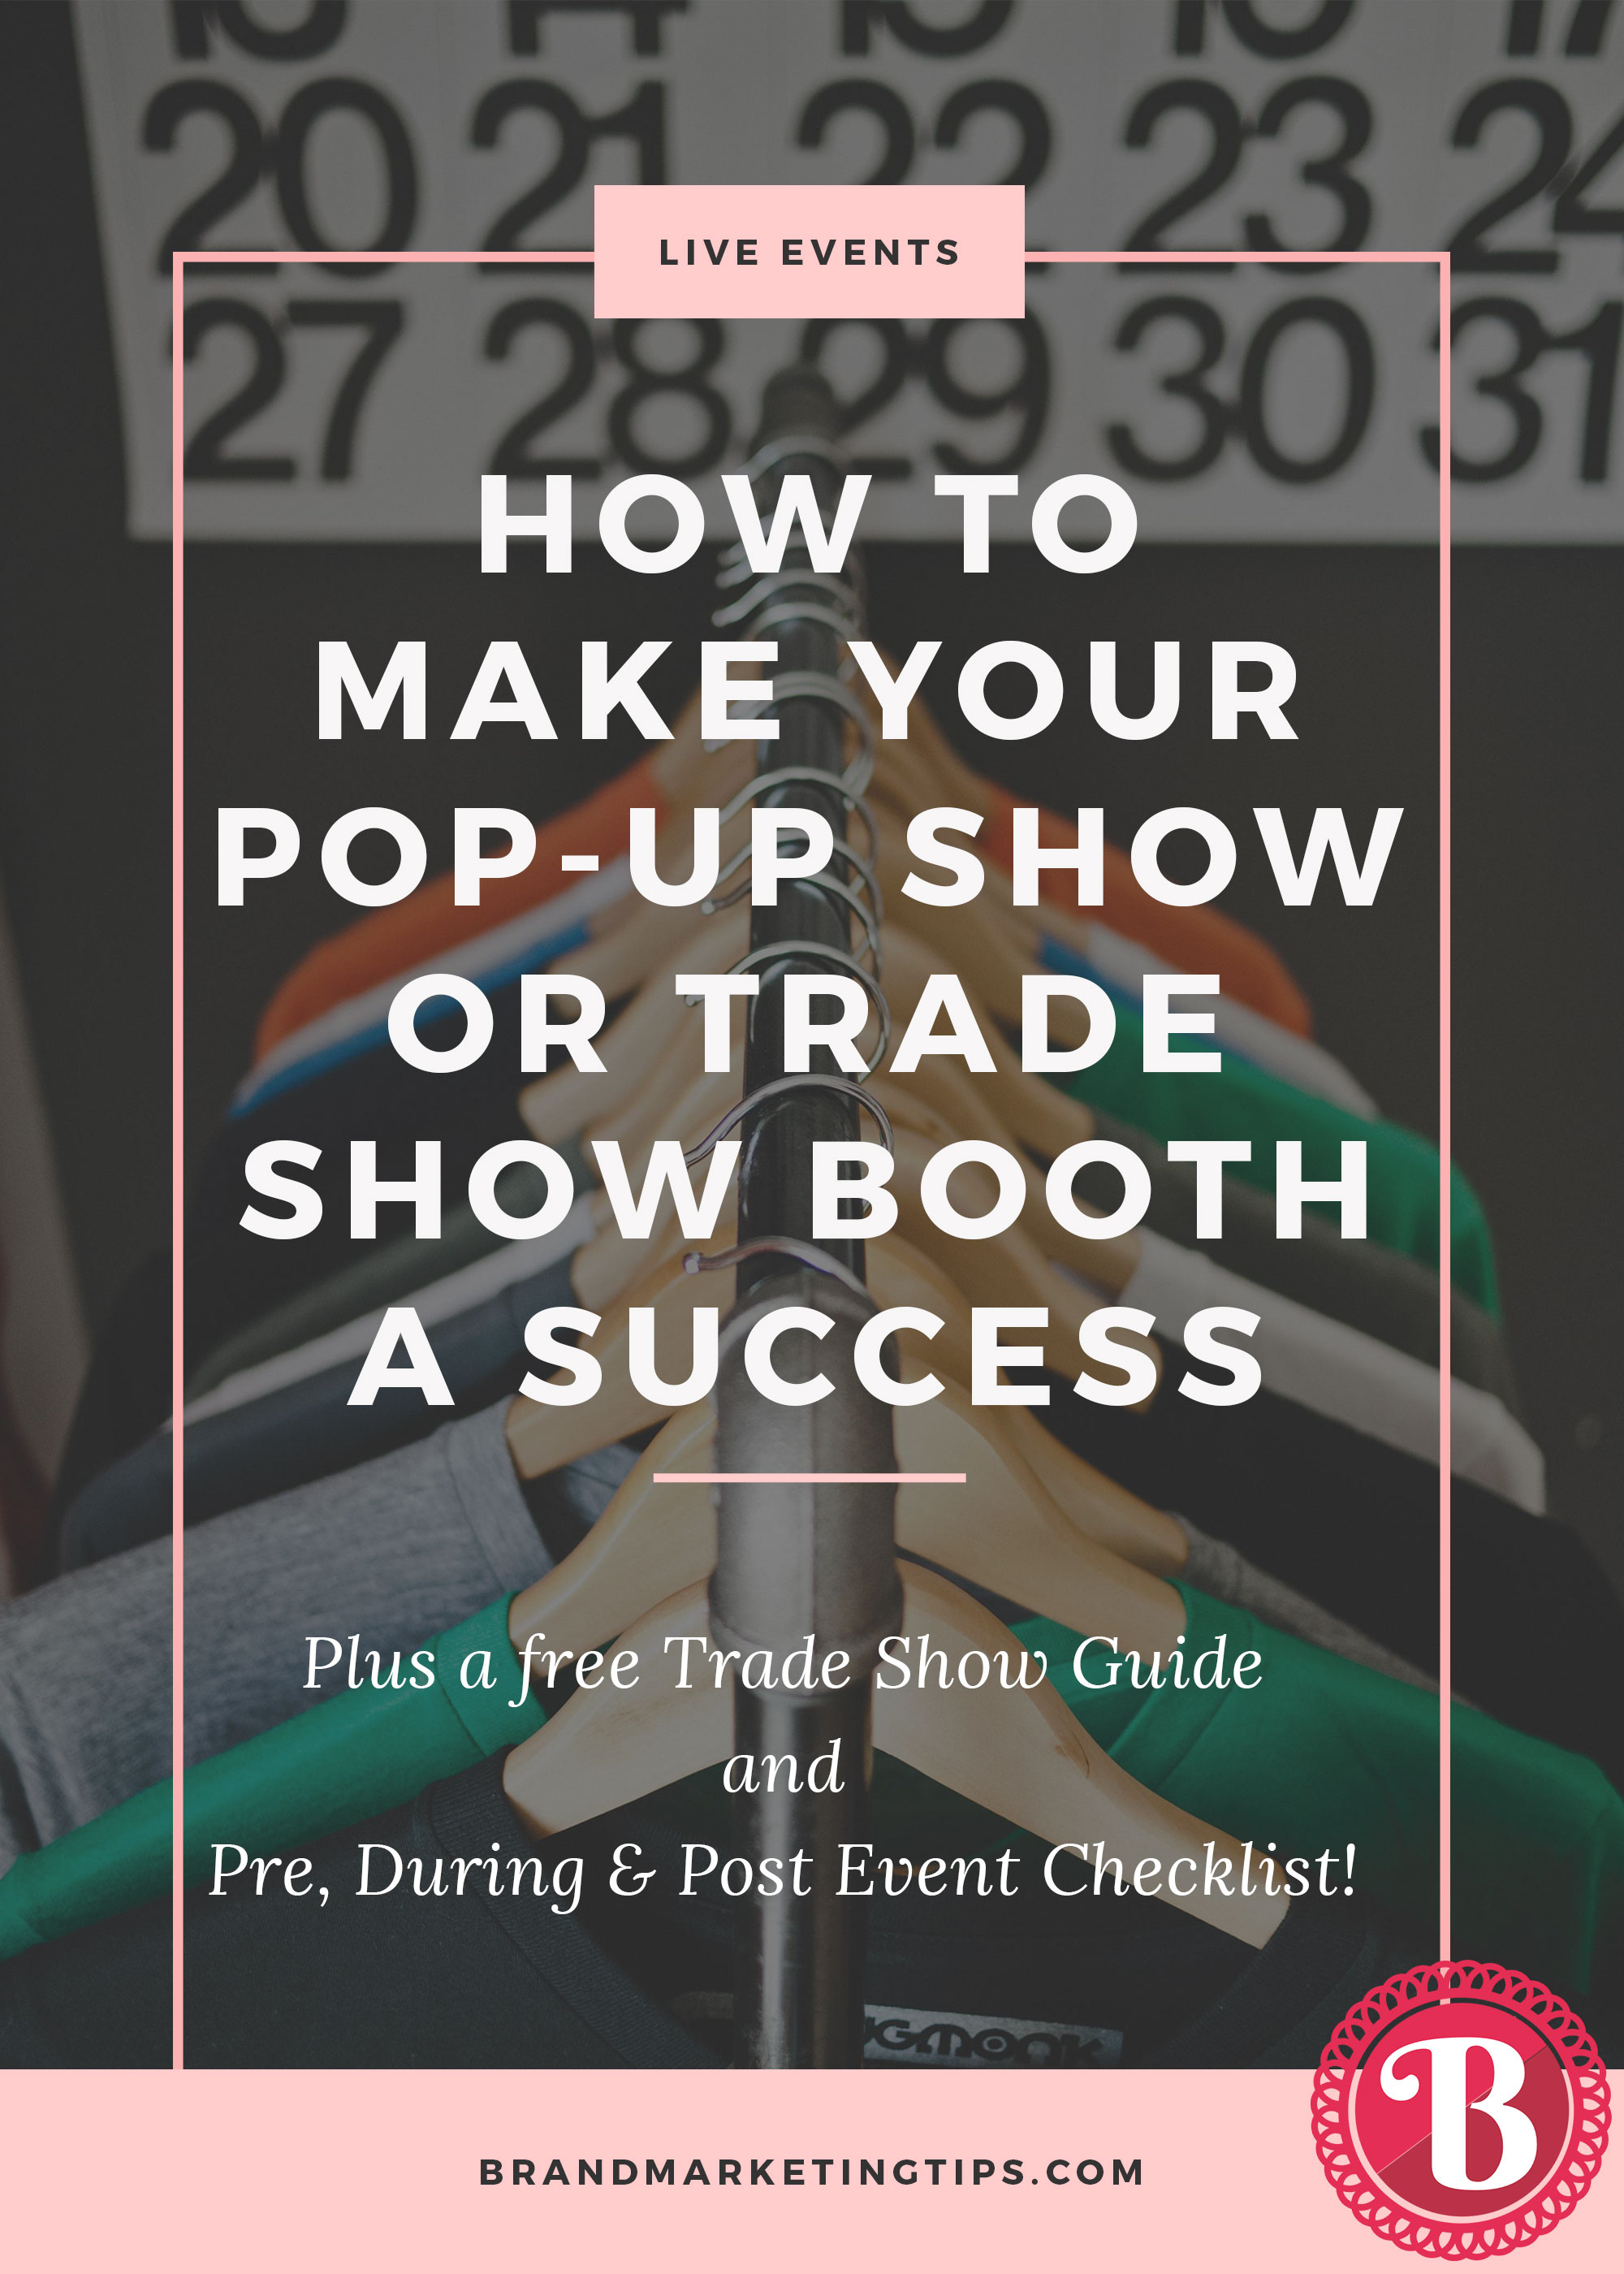 Exhibition Booth Checklist : How to make your pop up show or trade show booth a success